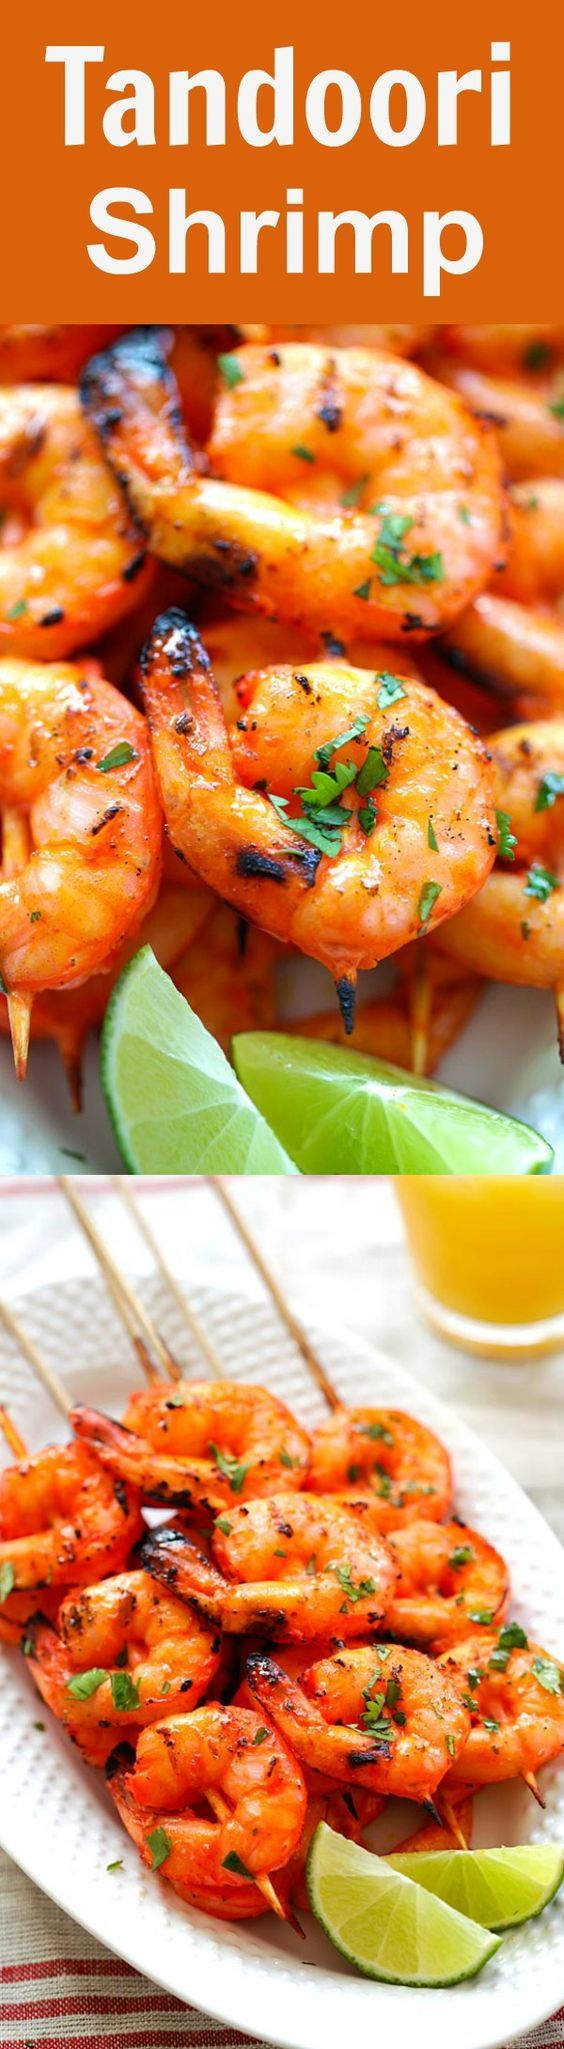 Tandoori Shrimp - perfectly marinated and grilled Indian Tandoori shrimp skewers. Super easy recipe that yields the most delicious shrimp ever | rasamalaysia.com